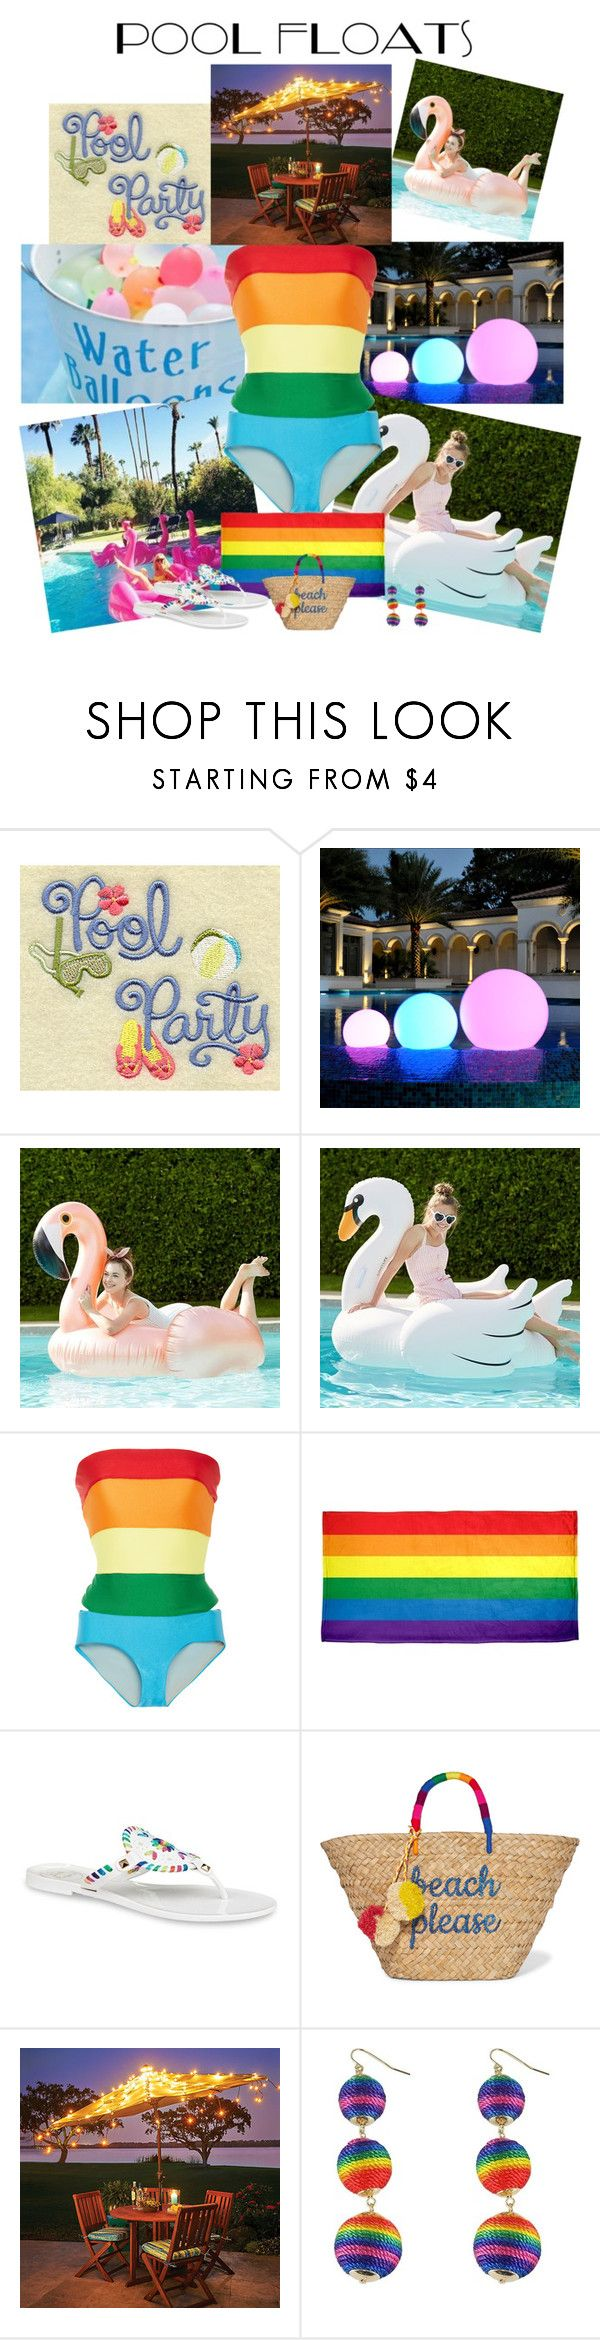 """""""Pool Party"""" by horcal ❤ liked on Polyvore featuring PBteen, Agatha Ruiz de la Prada, Jack Rogers, Kayu, Improvements and poolparty"""